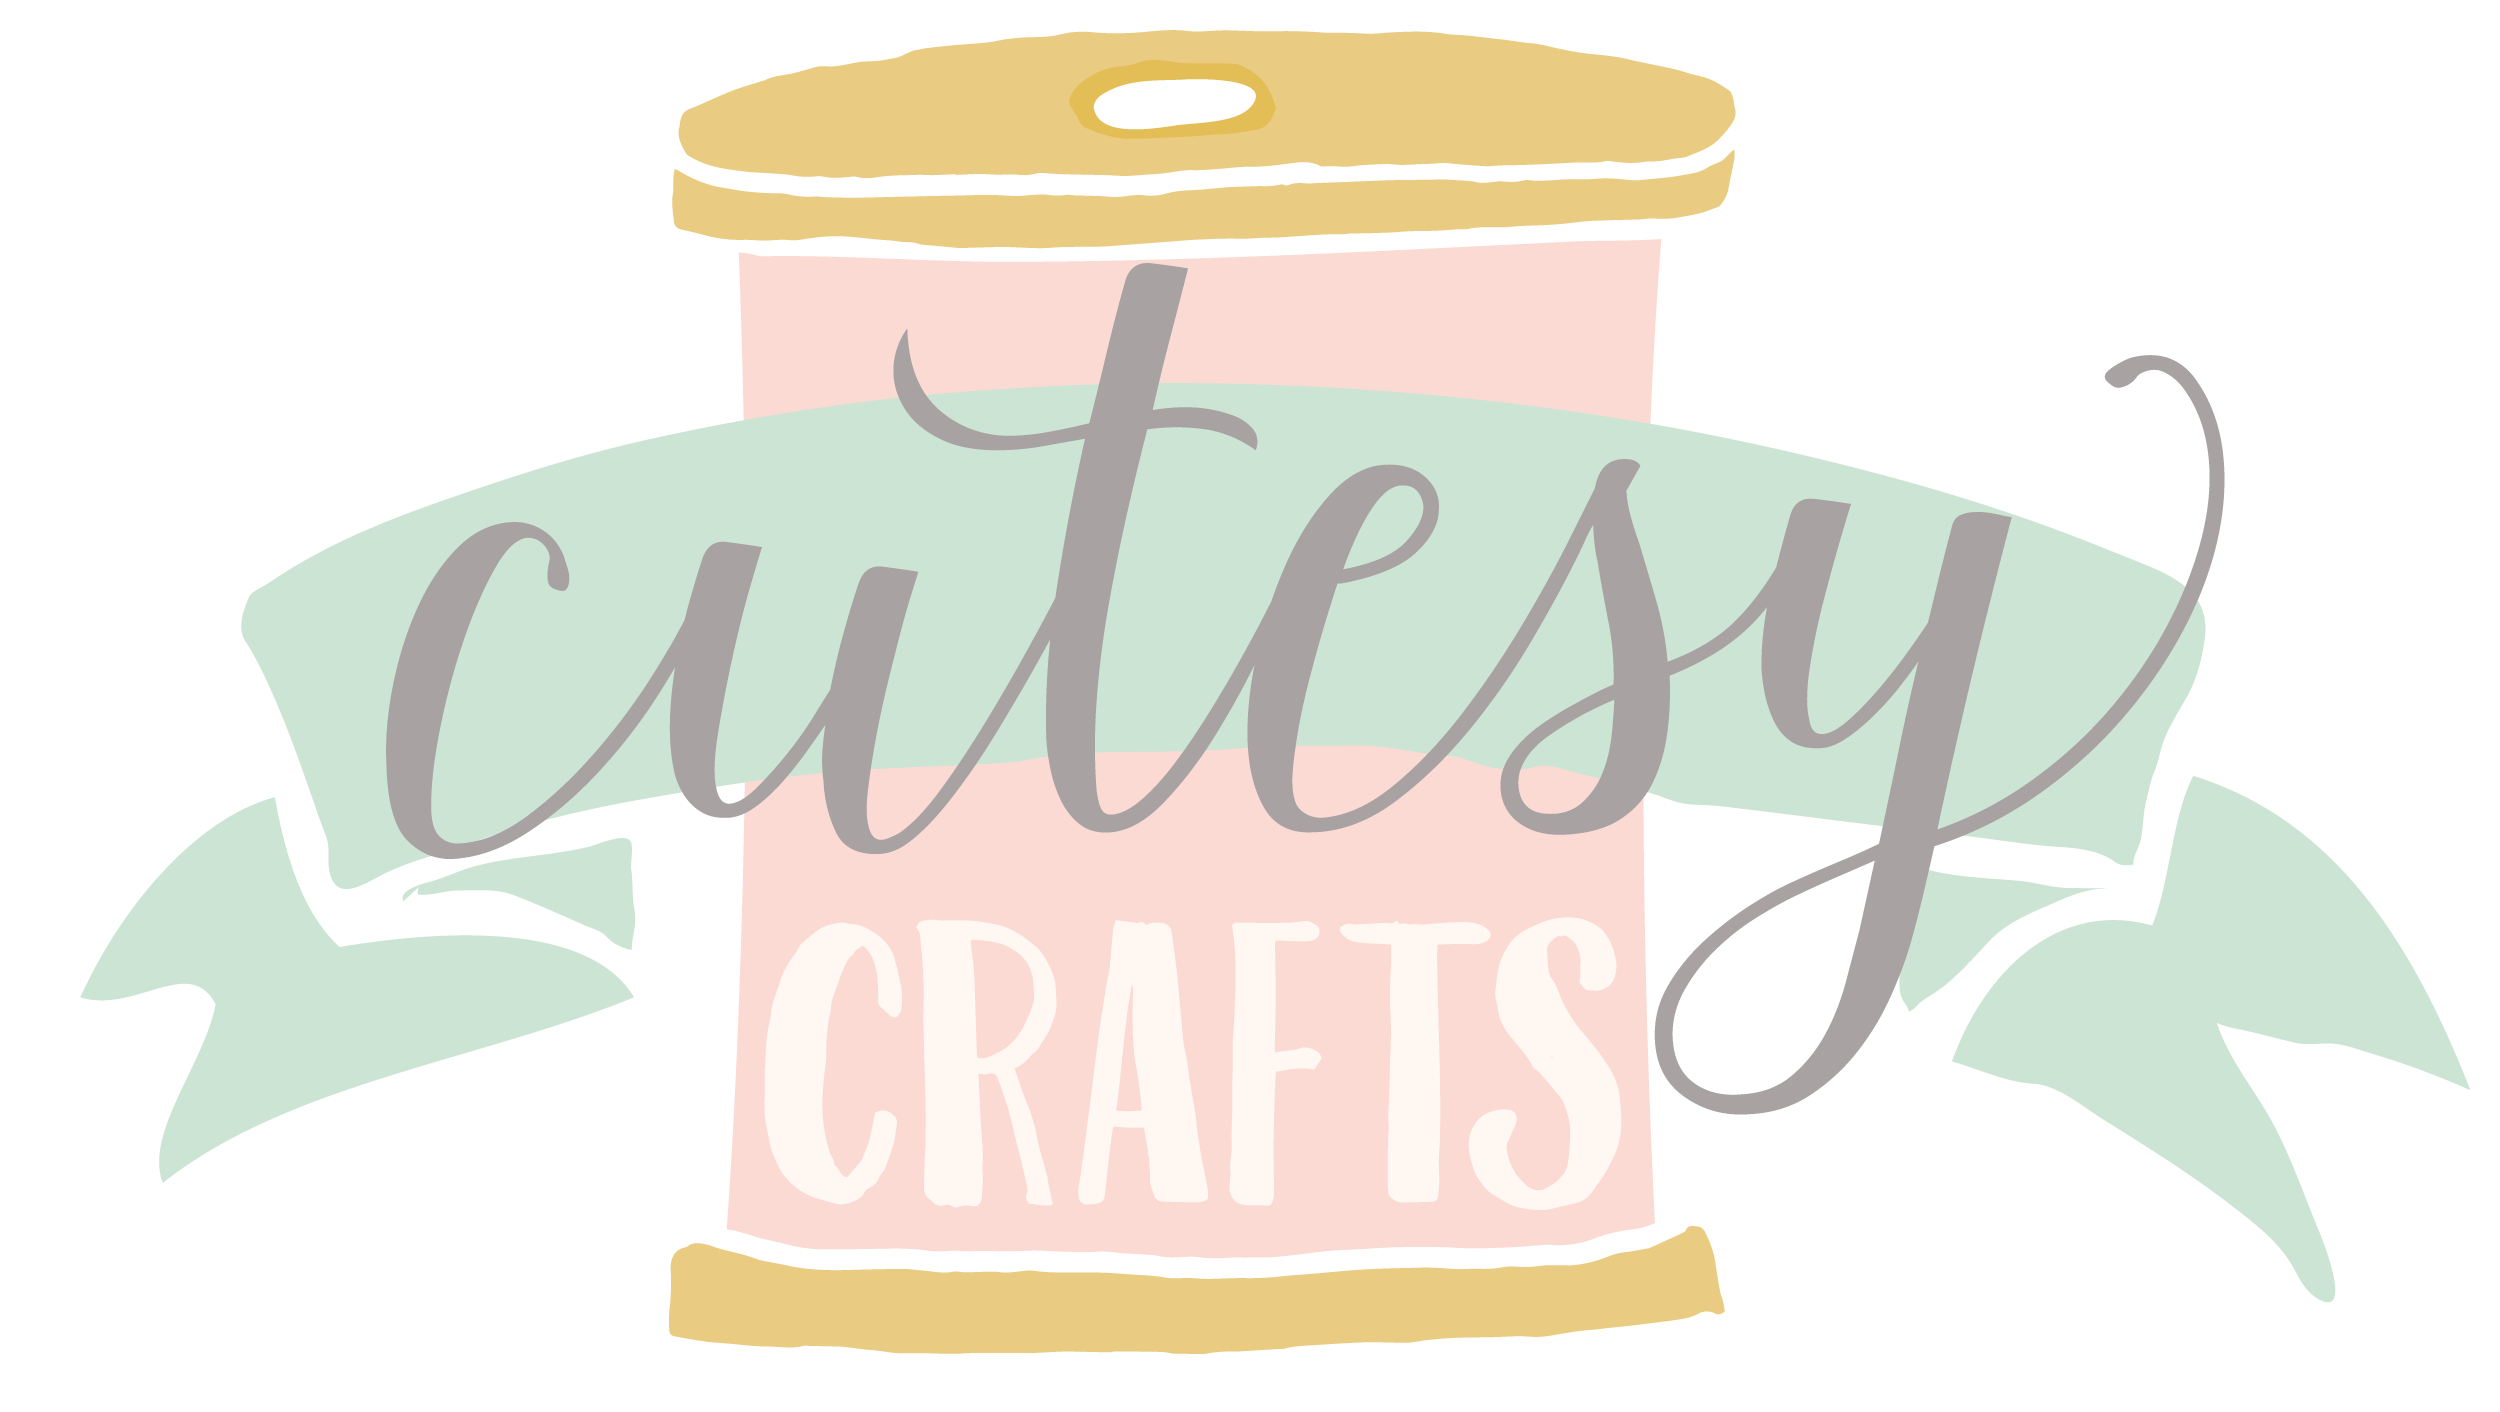 Cutesy Crafts Shop